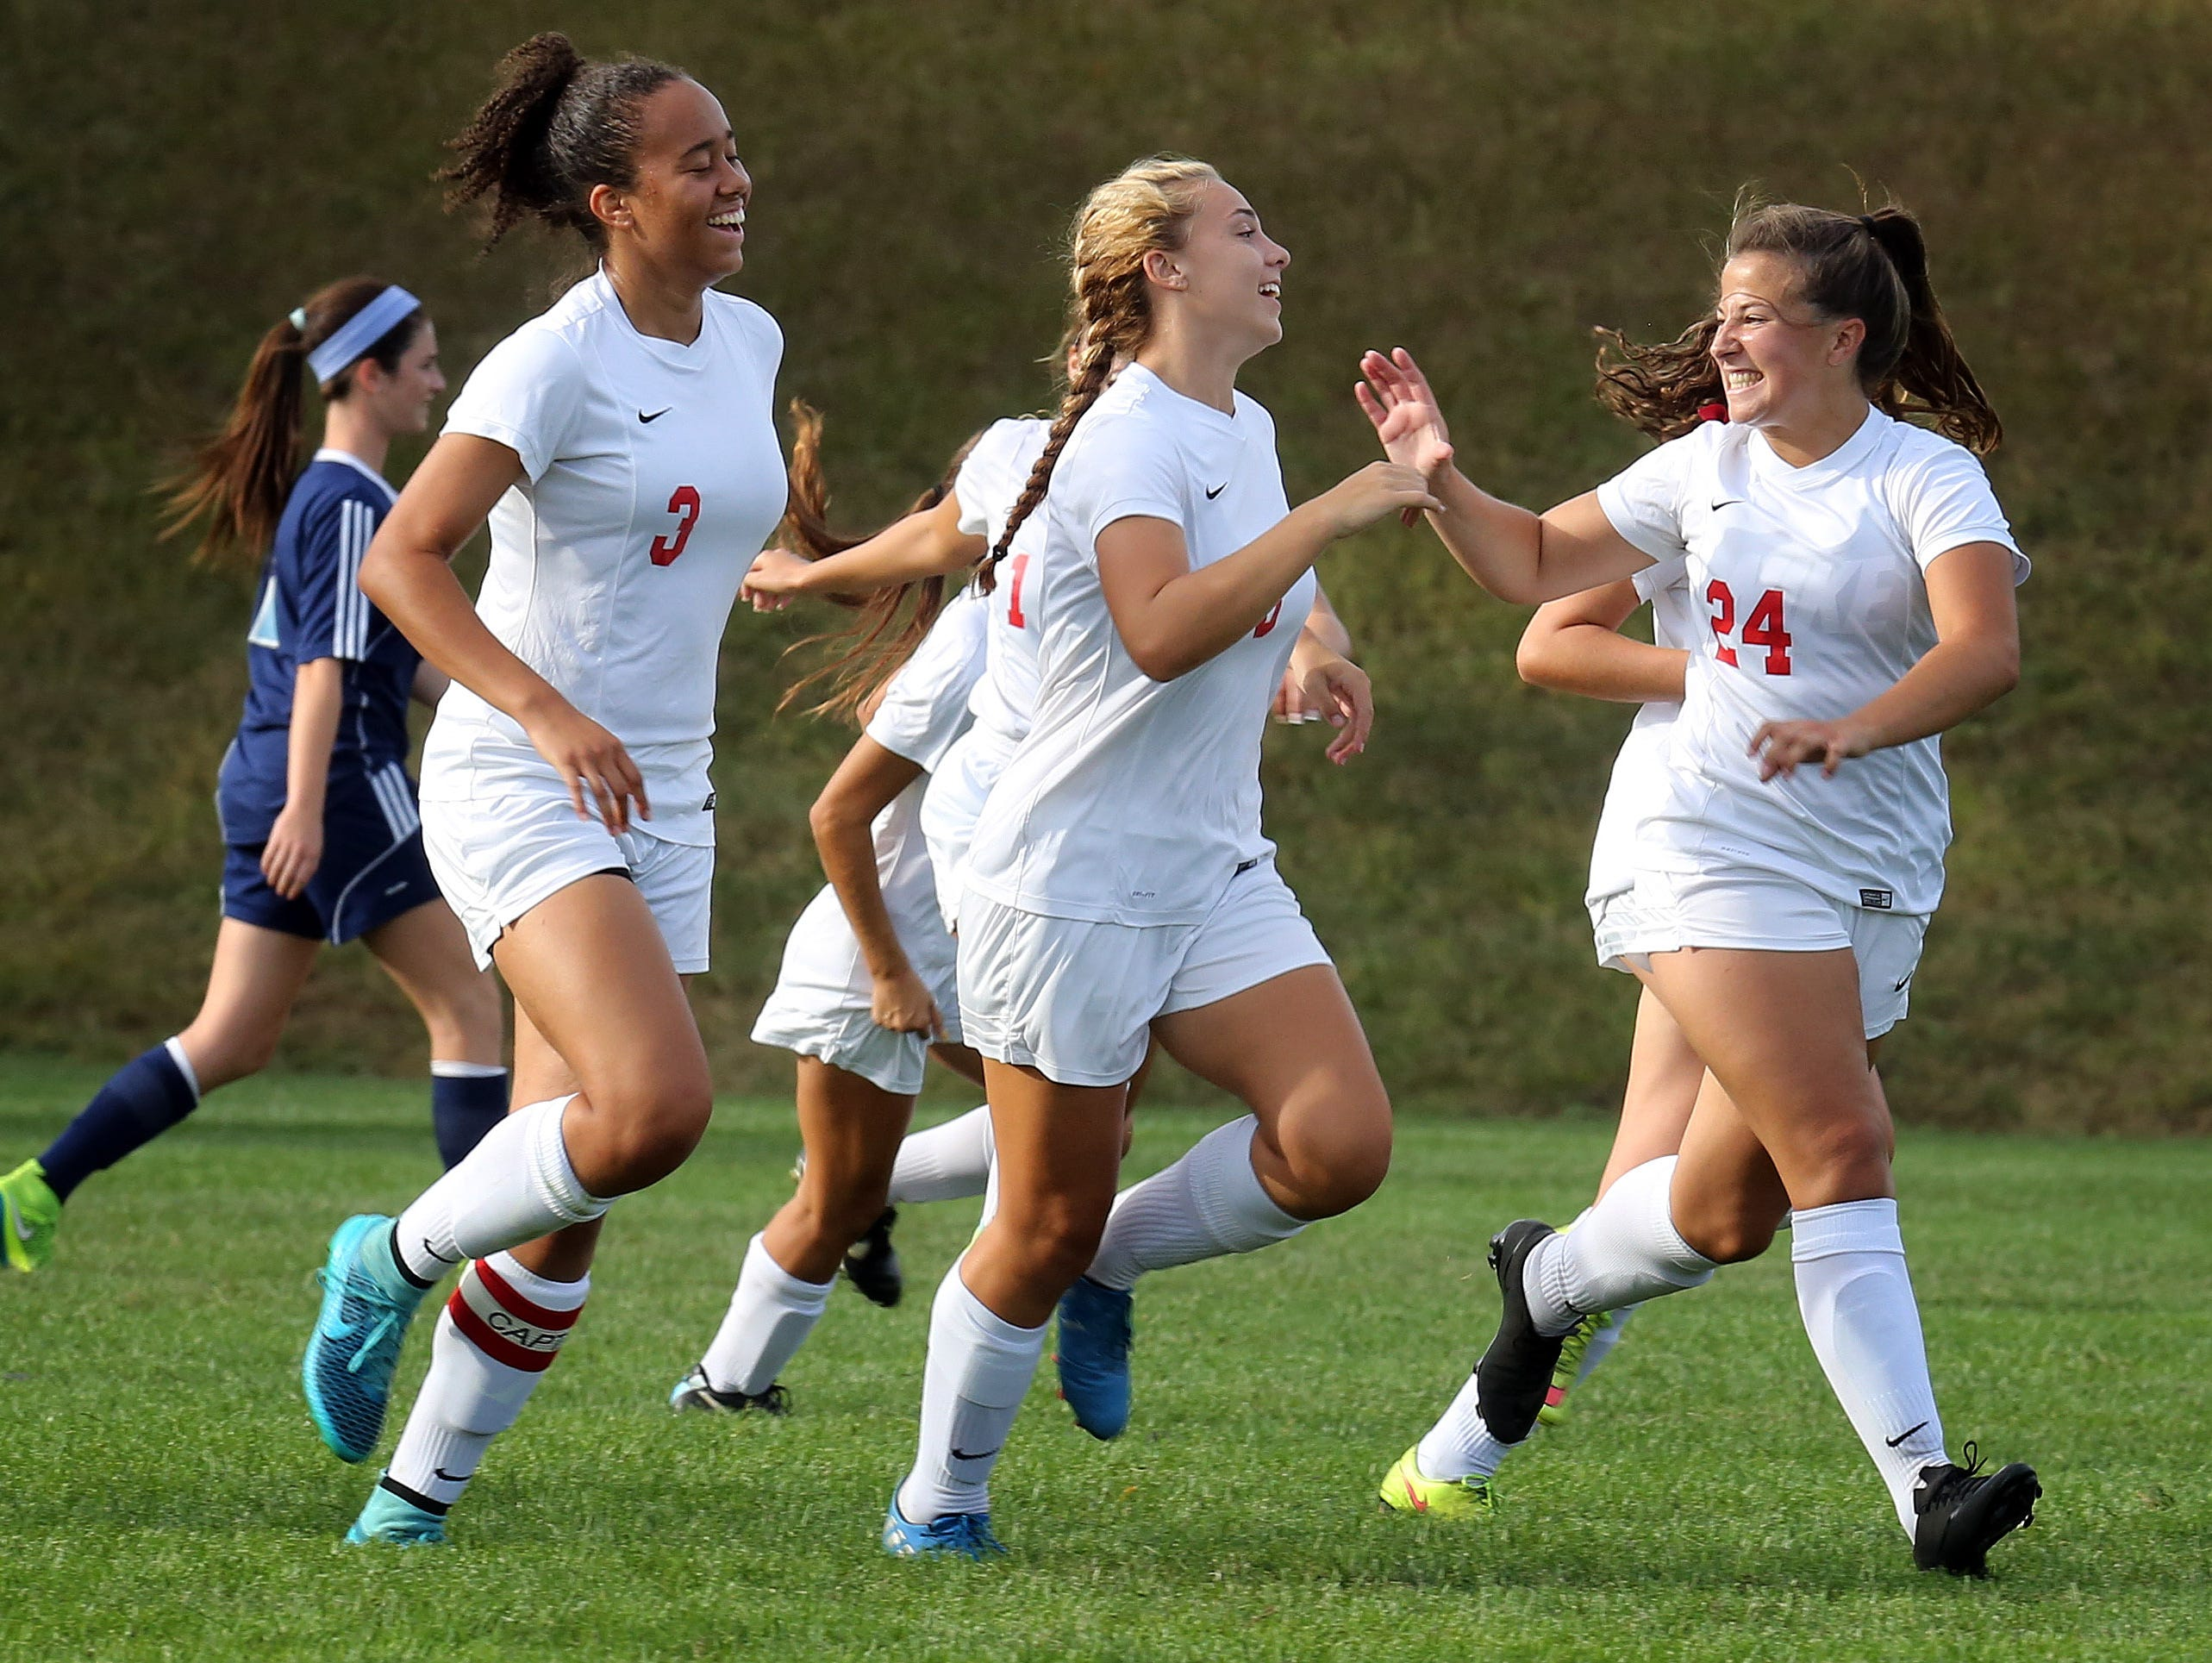 North Rockland's Ava Desposito (18) celebrates her goal with her teammates during girls soccer game against Suffern at North Rockland High School in Theills on Sept. 21, 2016.